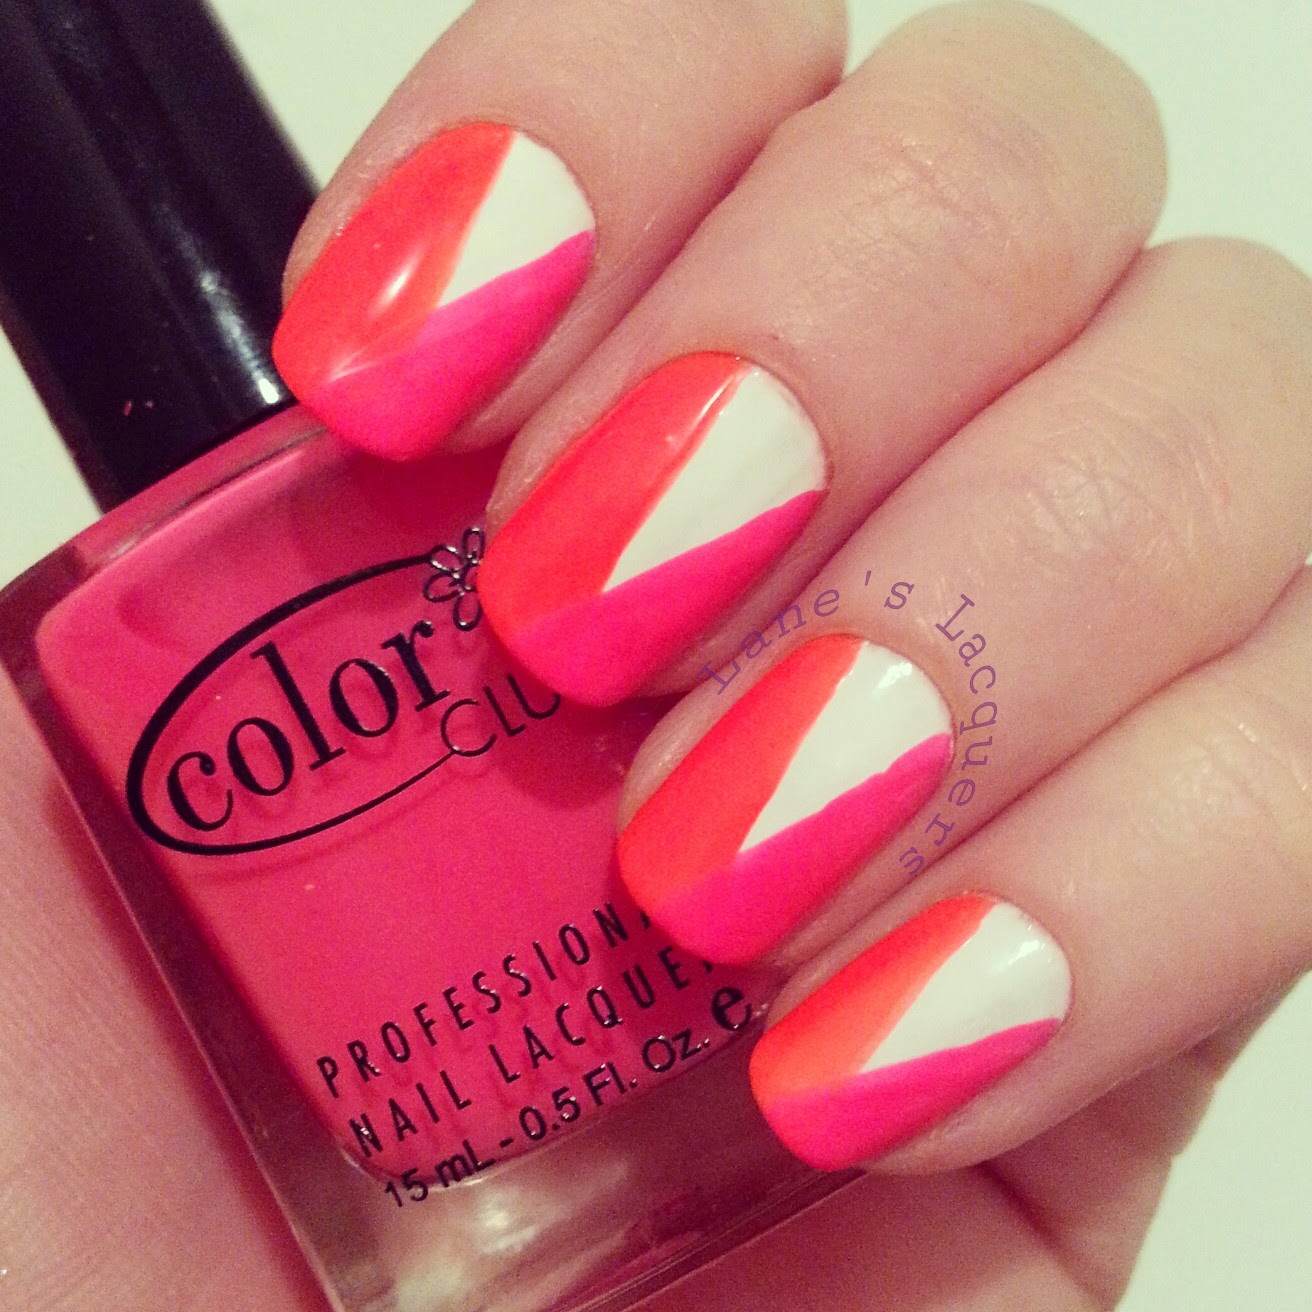 color-club-neon-white-simple-nail-art (1)